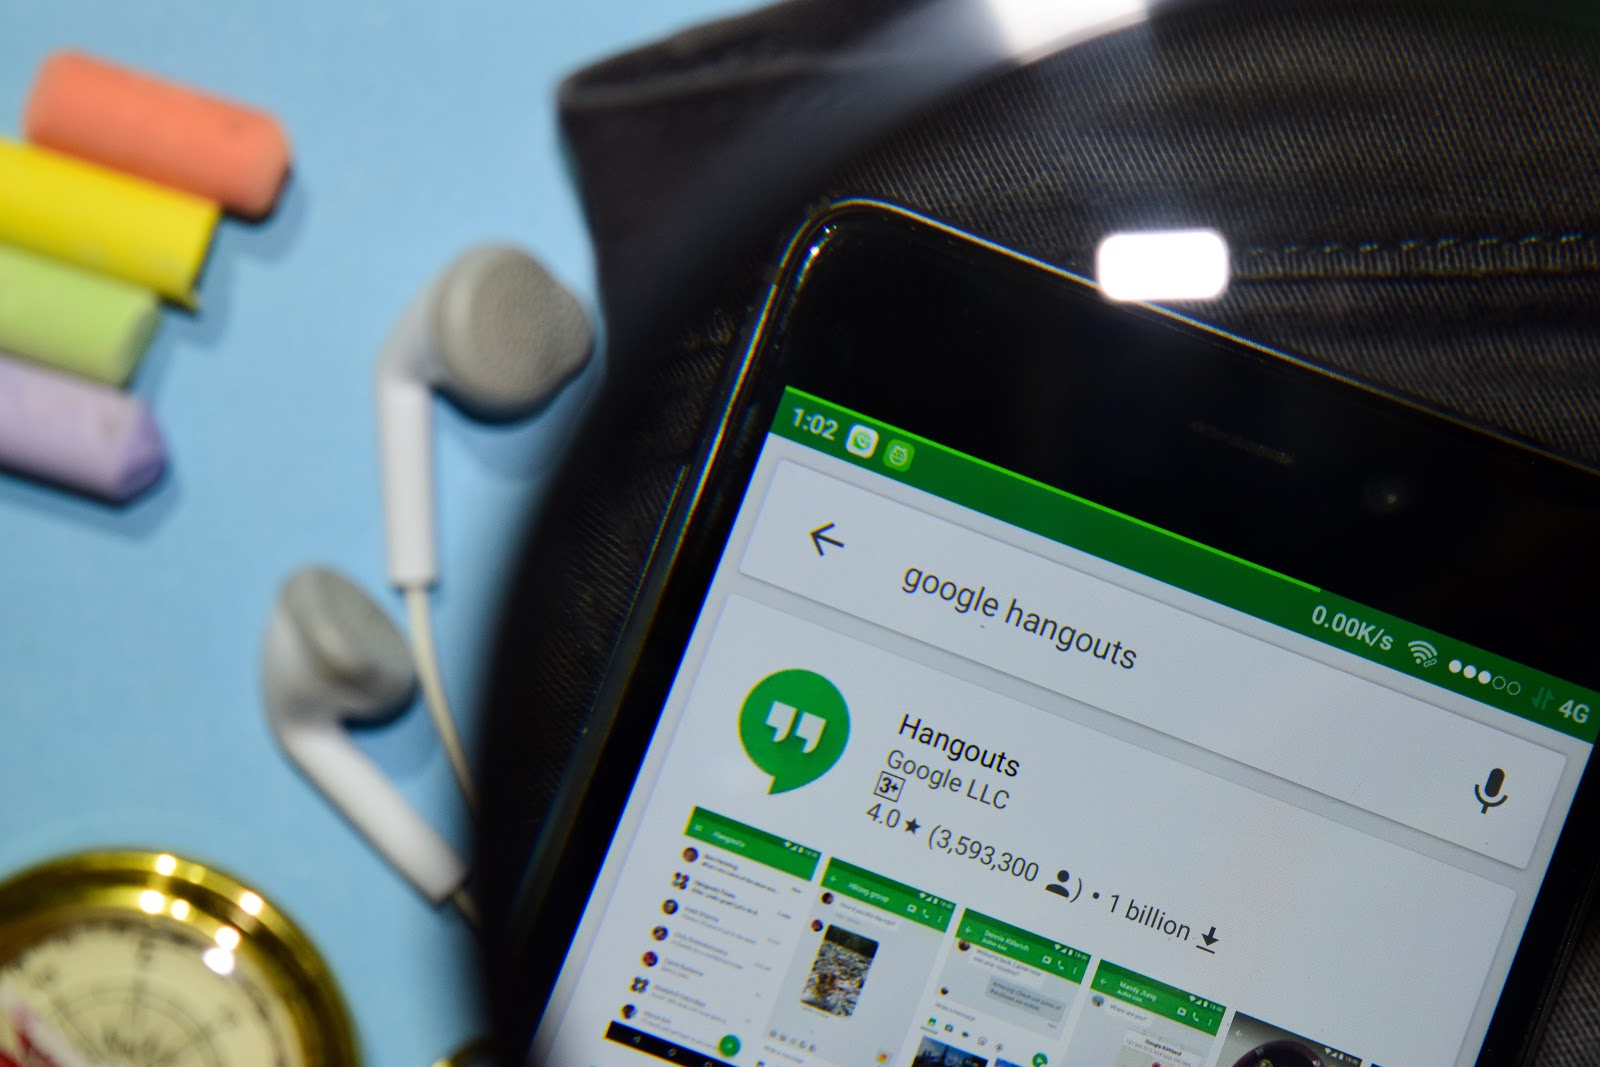 Google Hangouts in phone